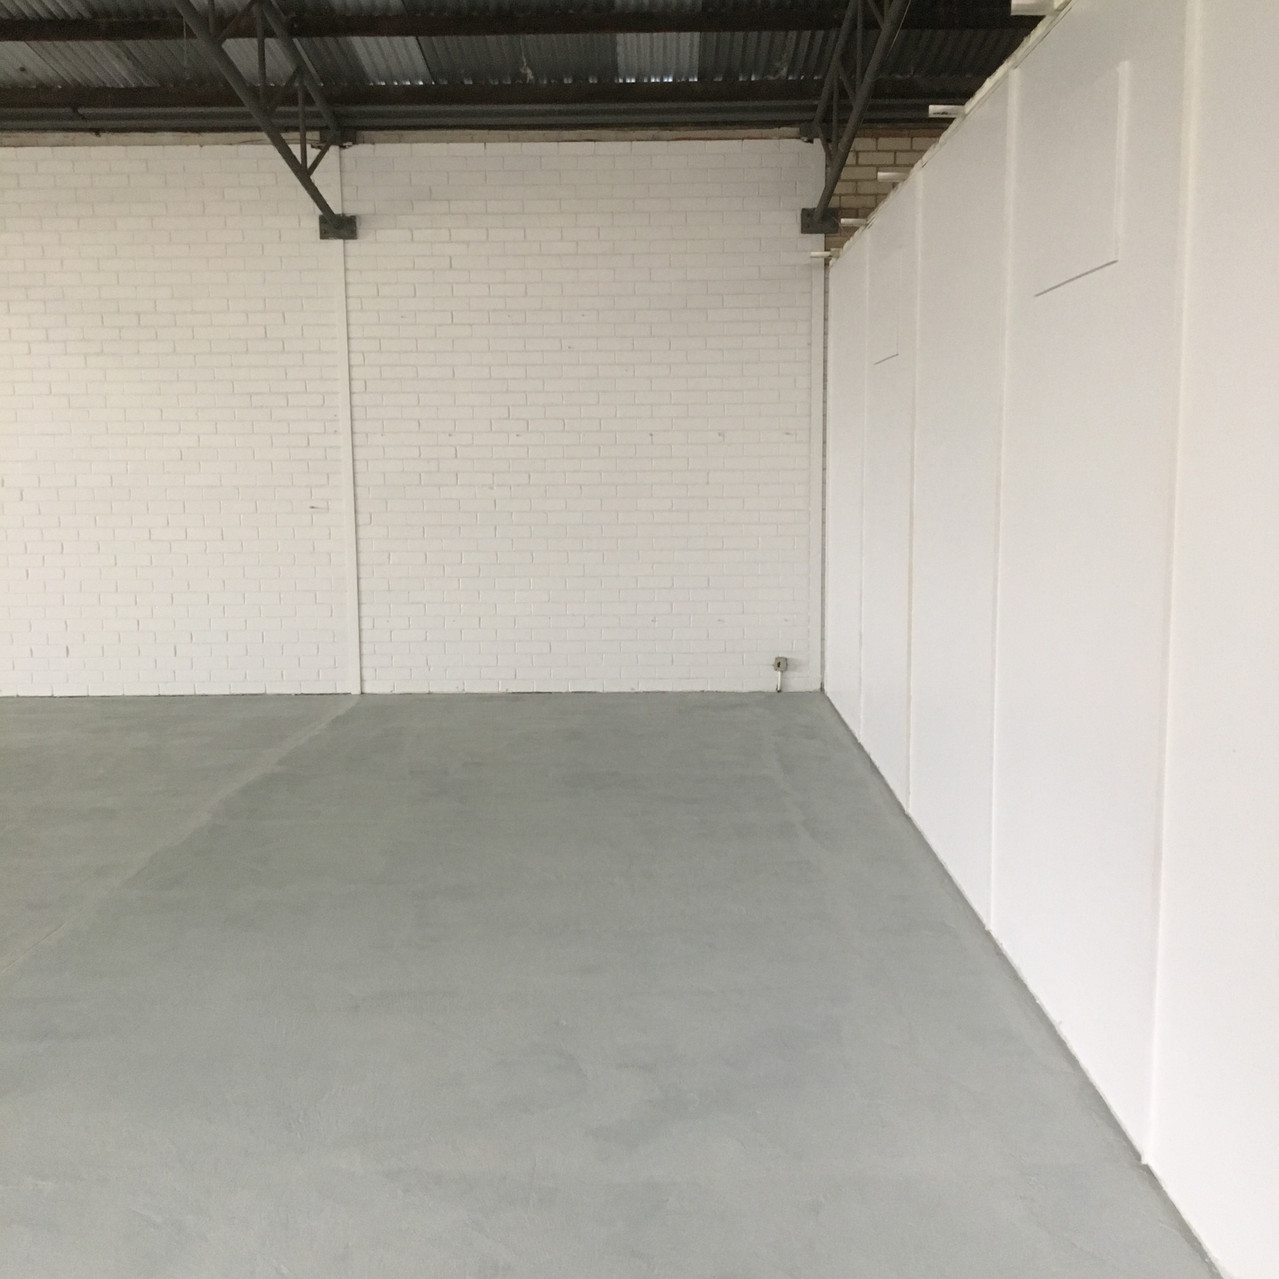 Conspar floor restoration at this commercial warehouse in Bayswater.